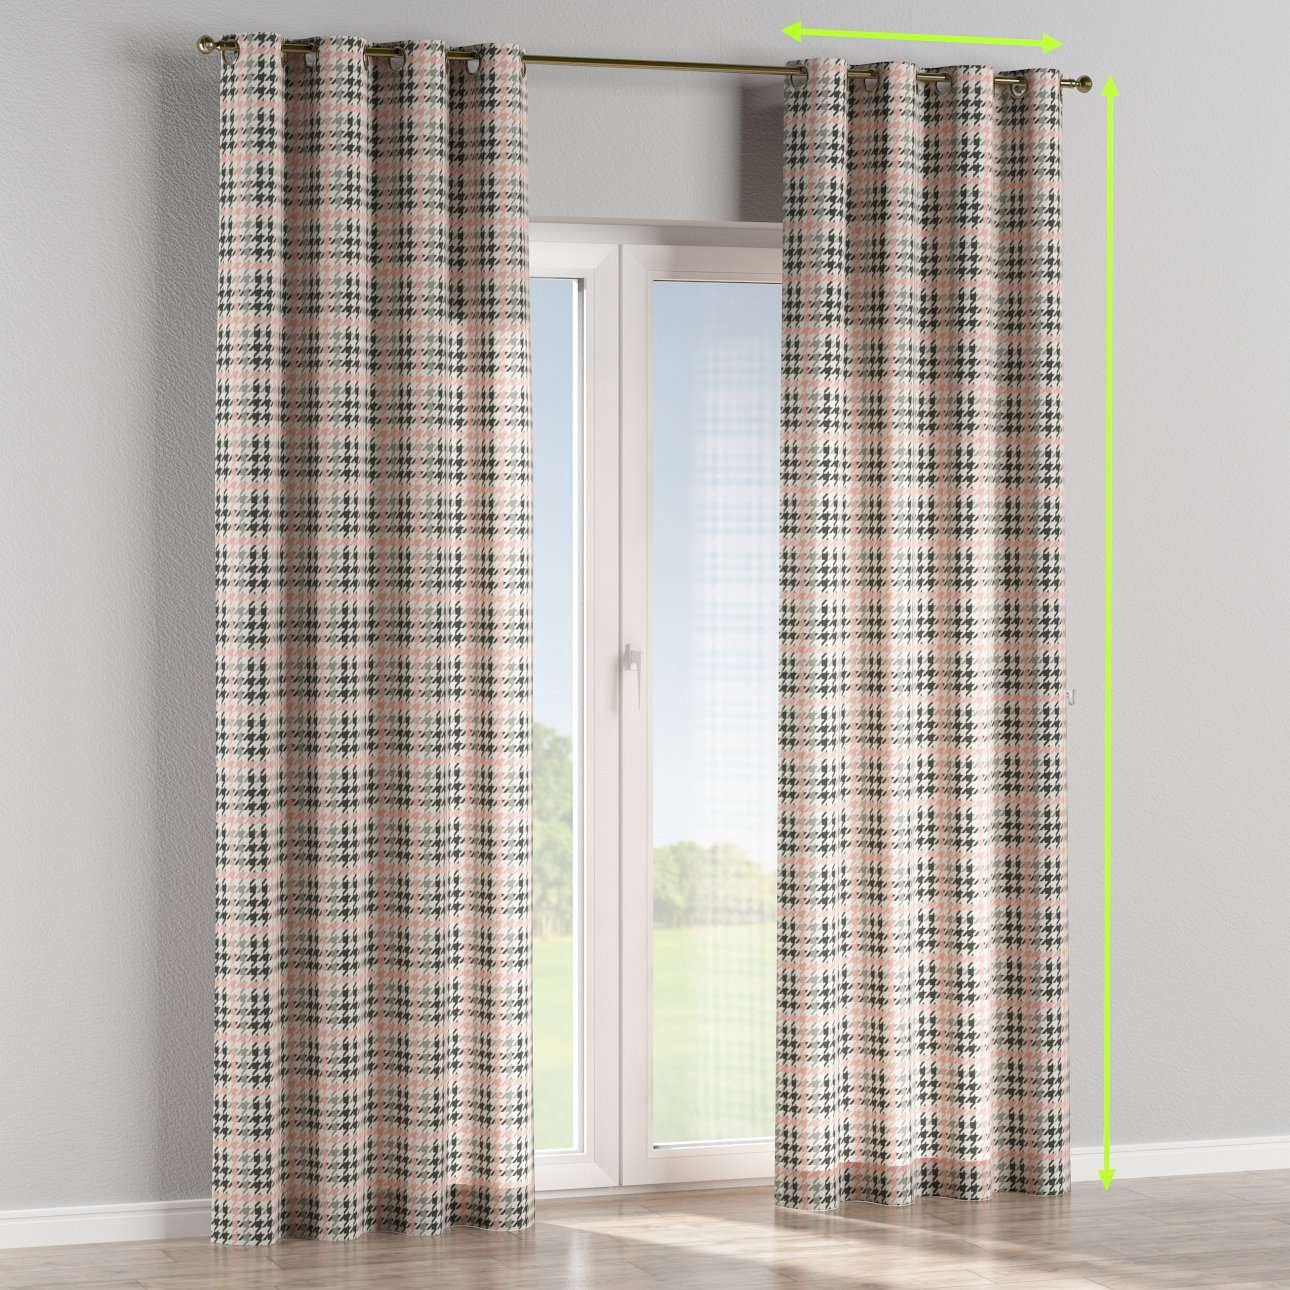 Eyelet curtains in collection Brooklyn, fabric: 137-75